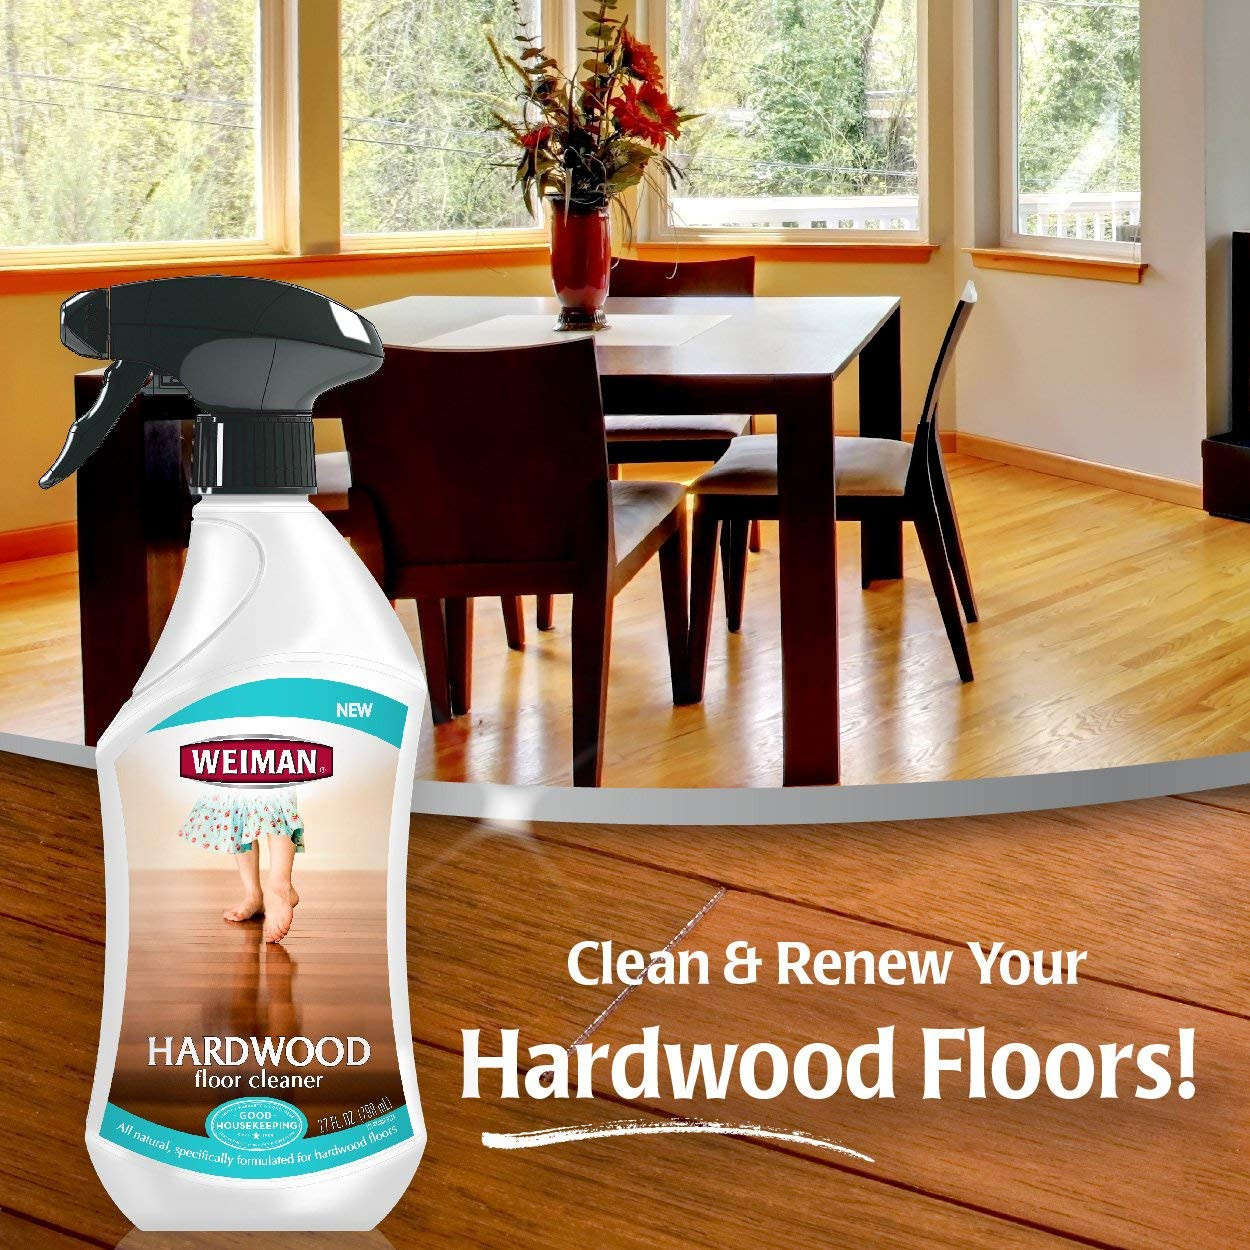 5 inch walnut hardwood flooring of amazon com weiman hardwood floor cleaner surface safe no harsh for amazon com weiman hardwood floor cleaner surface safe no harsh scent safe for use around kids and pets residue free 27 oz trigger home kitchen